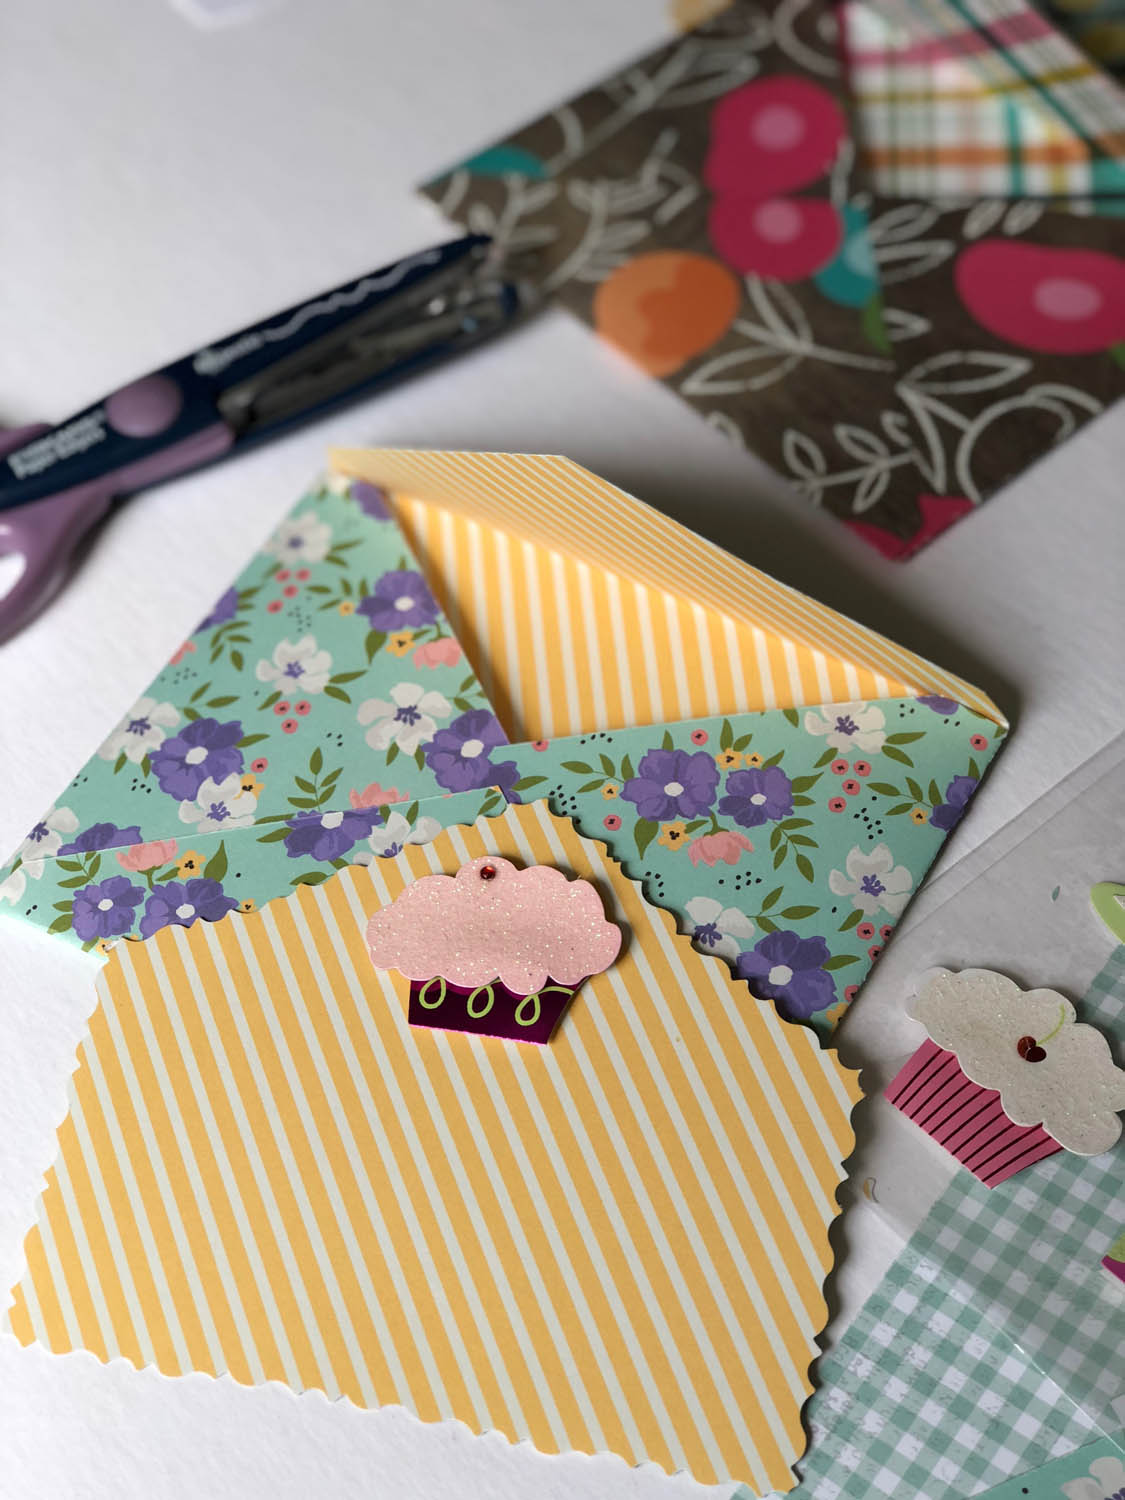 finished DIY envelopes with scrapbook paper and handmade birthday card